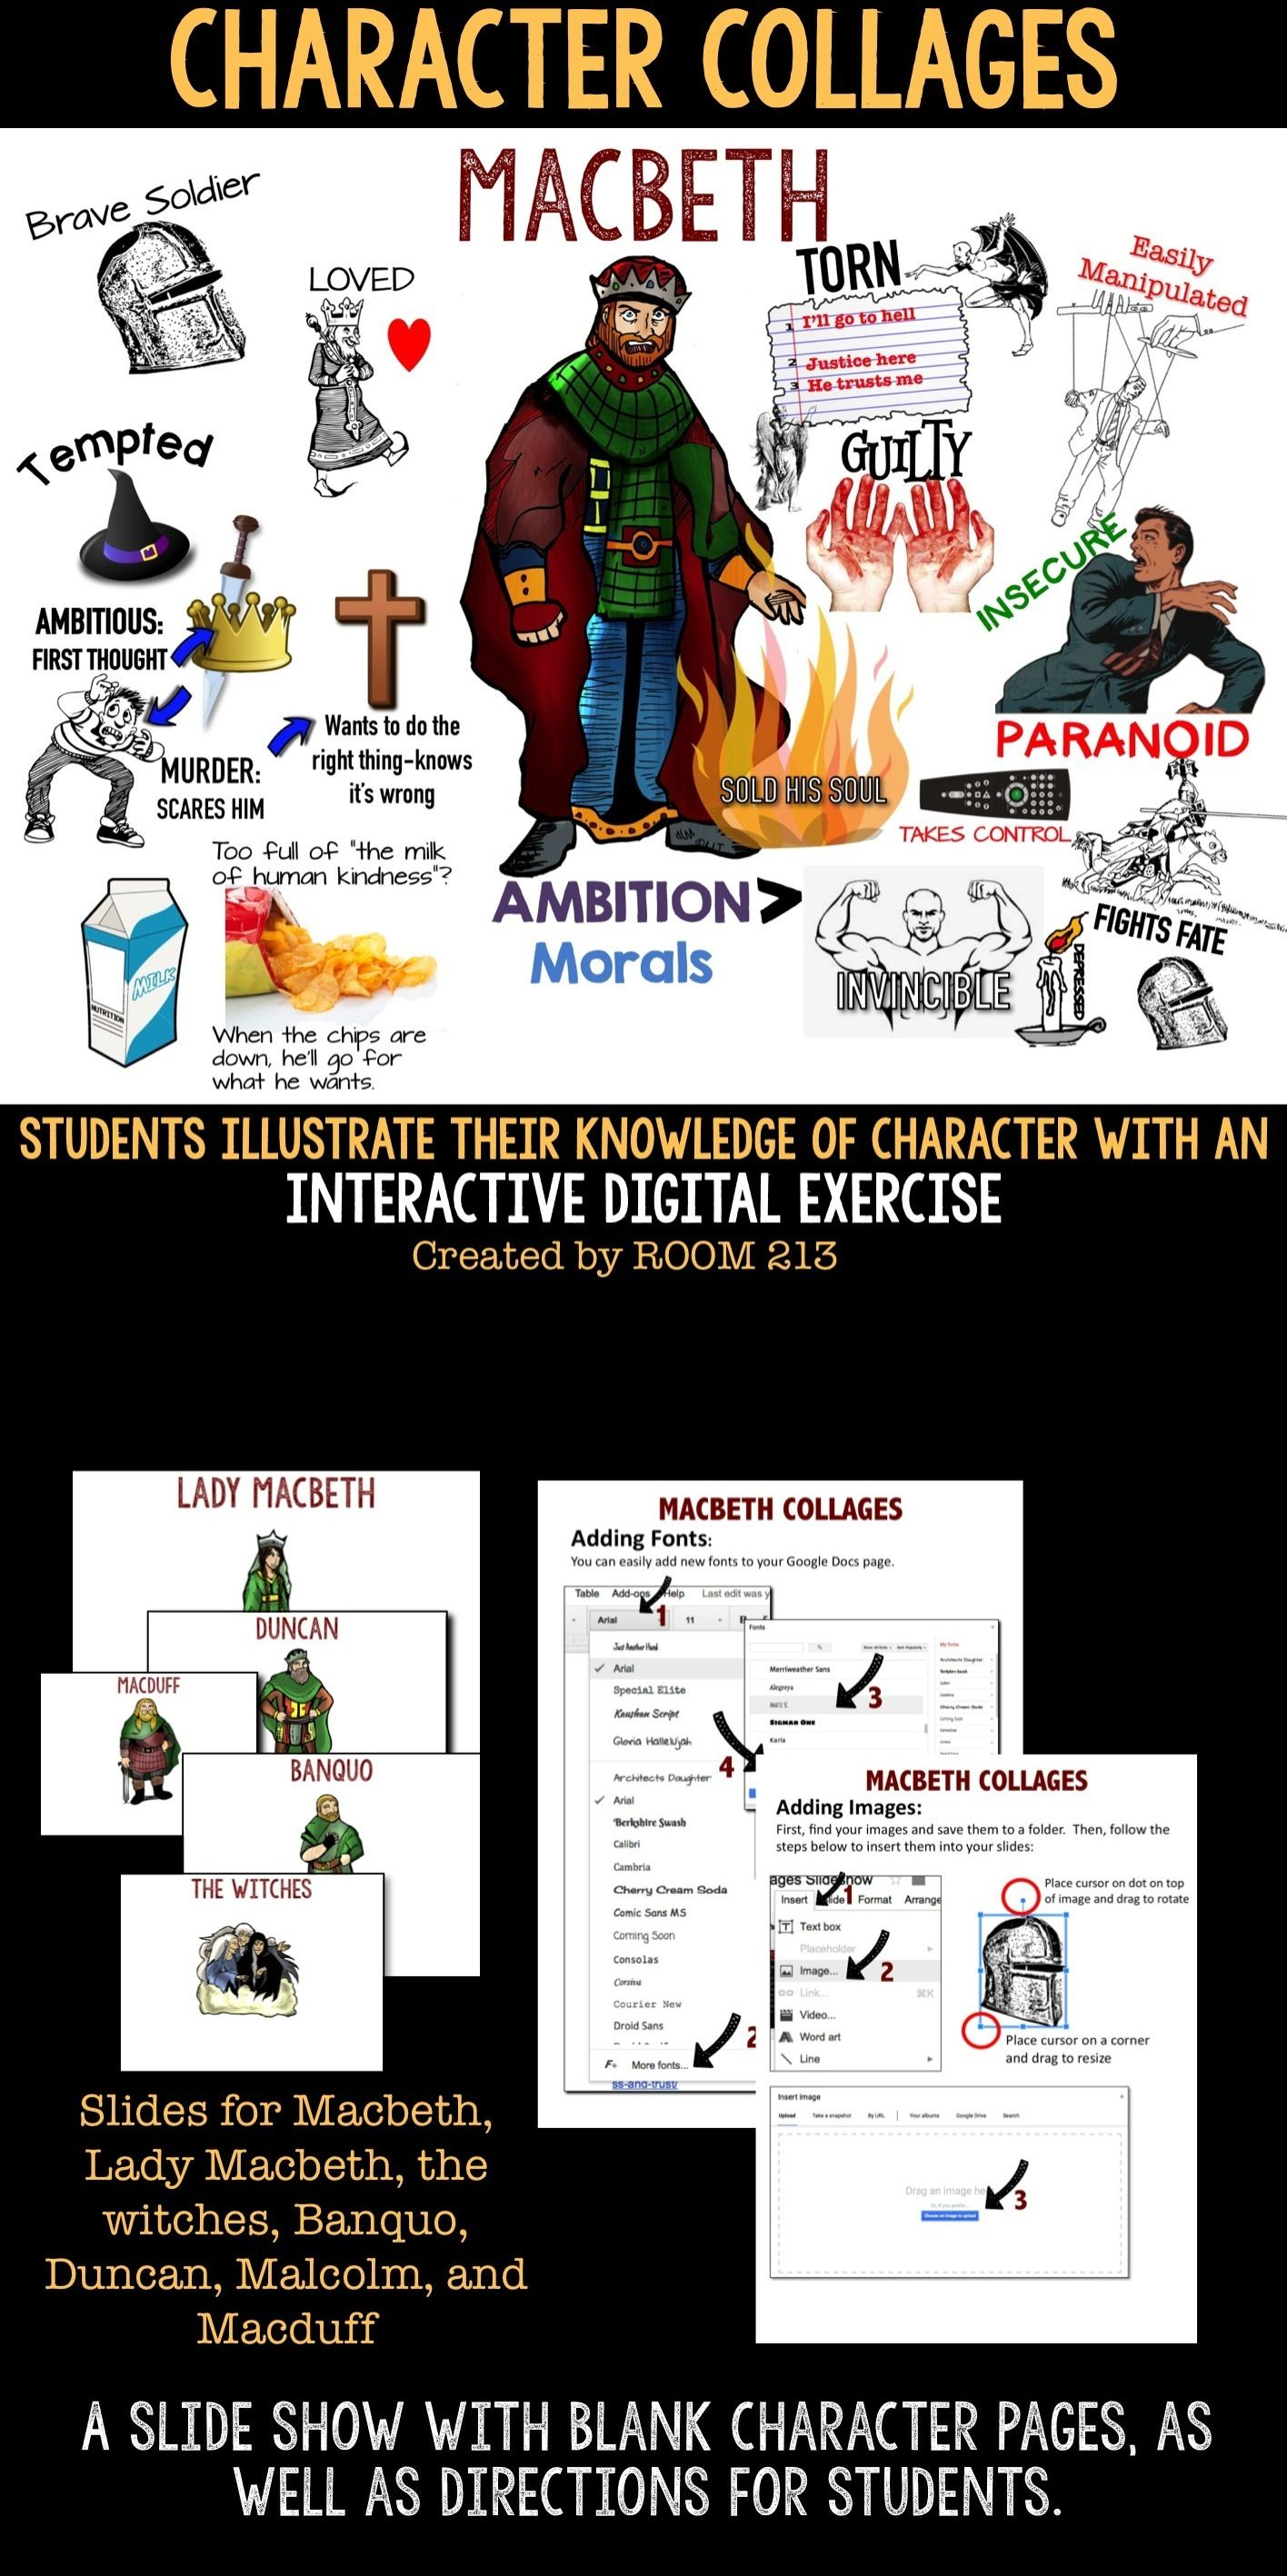 Macbeth Character Collages An Interactive Digital Activity  Macbeth Looking For A Way To Engage Your Students Try This Fun But  Meaningful Interactive Digital Activity